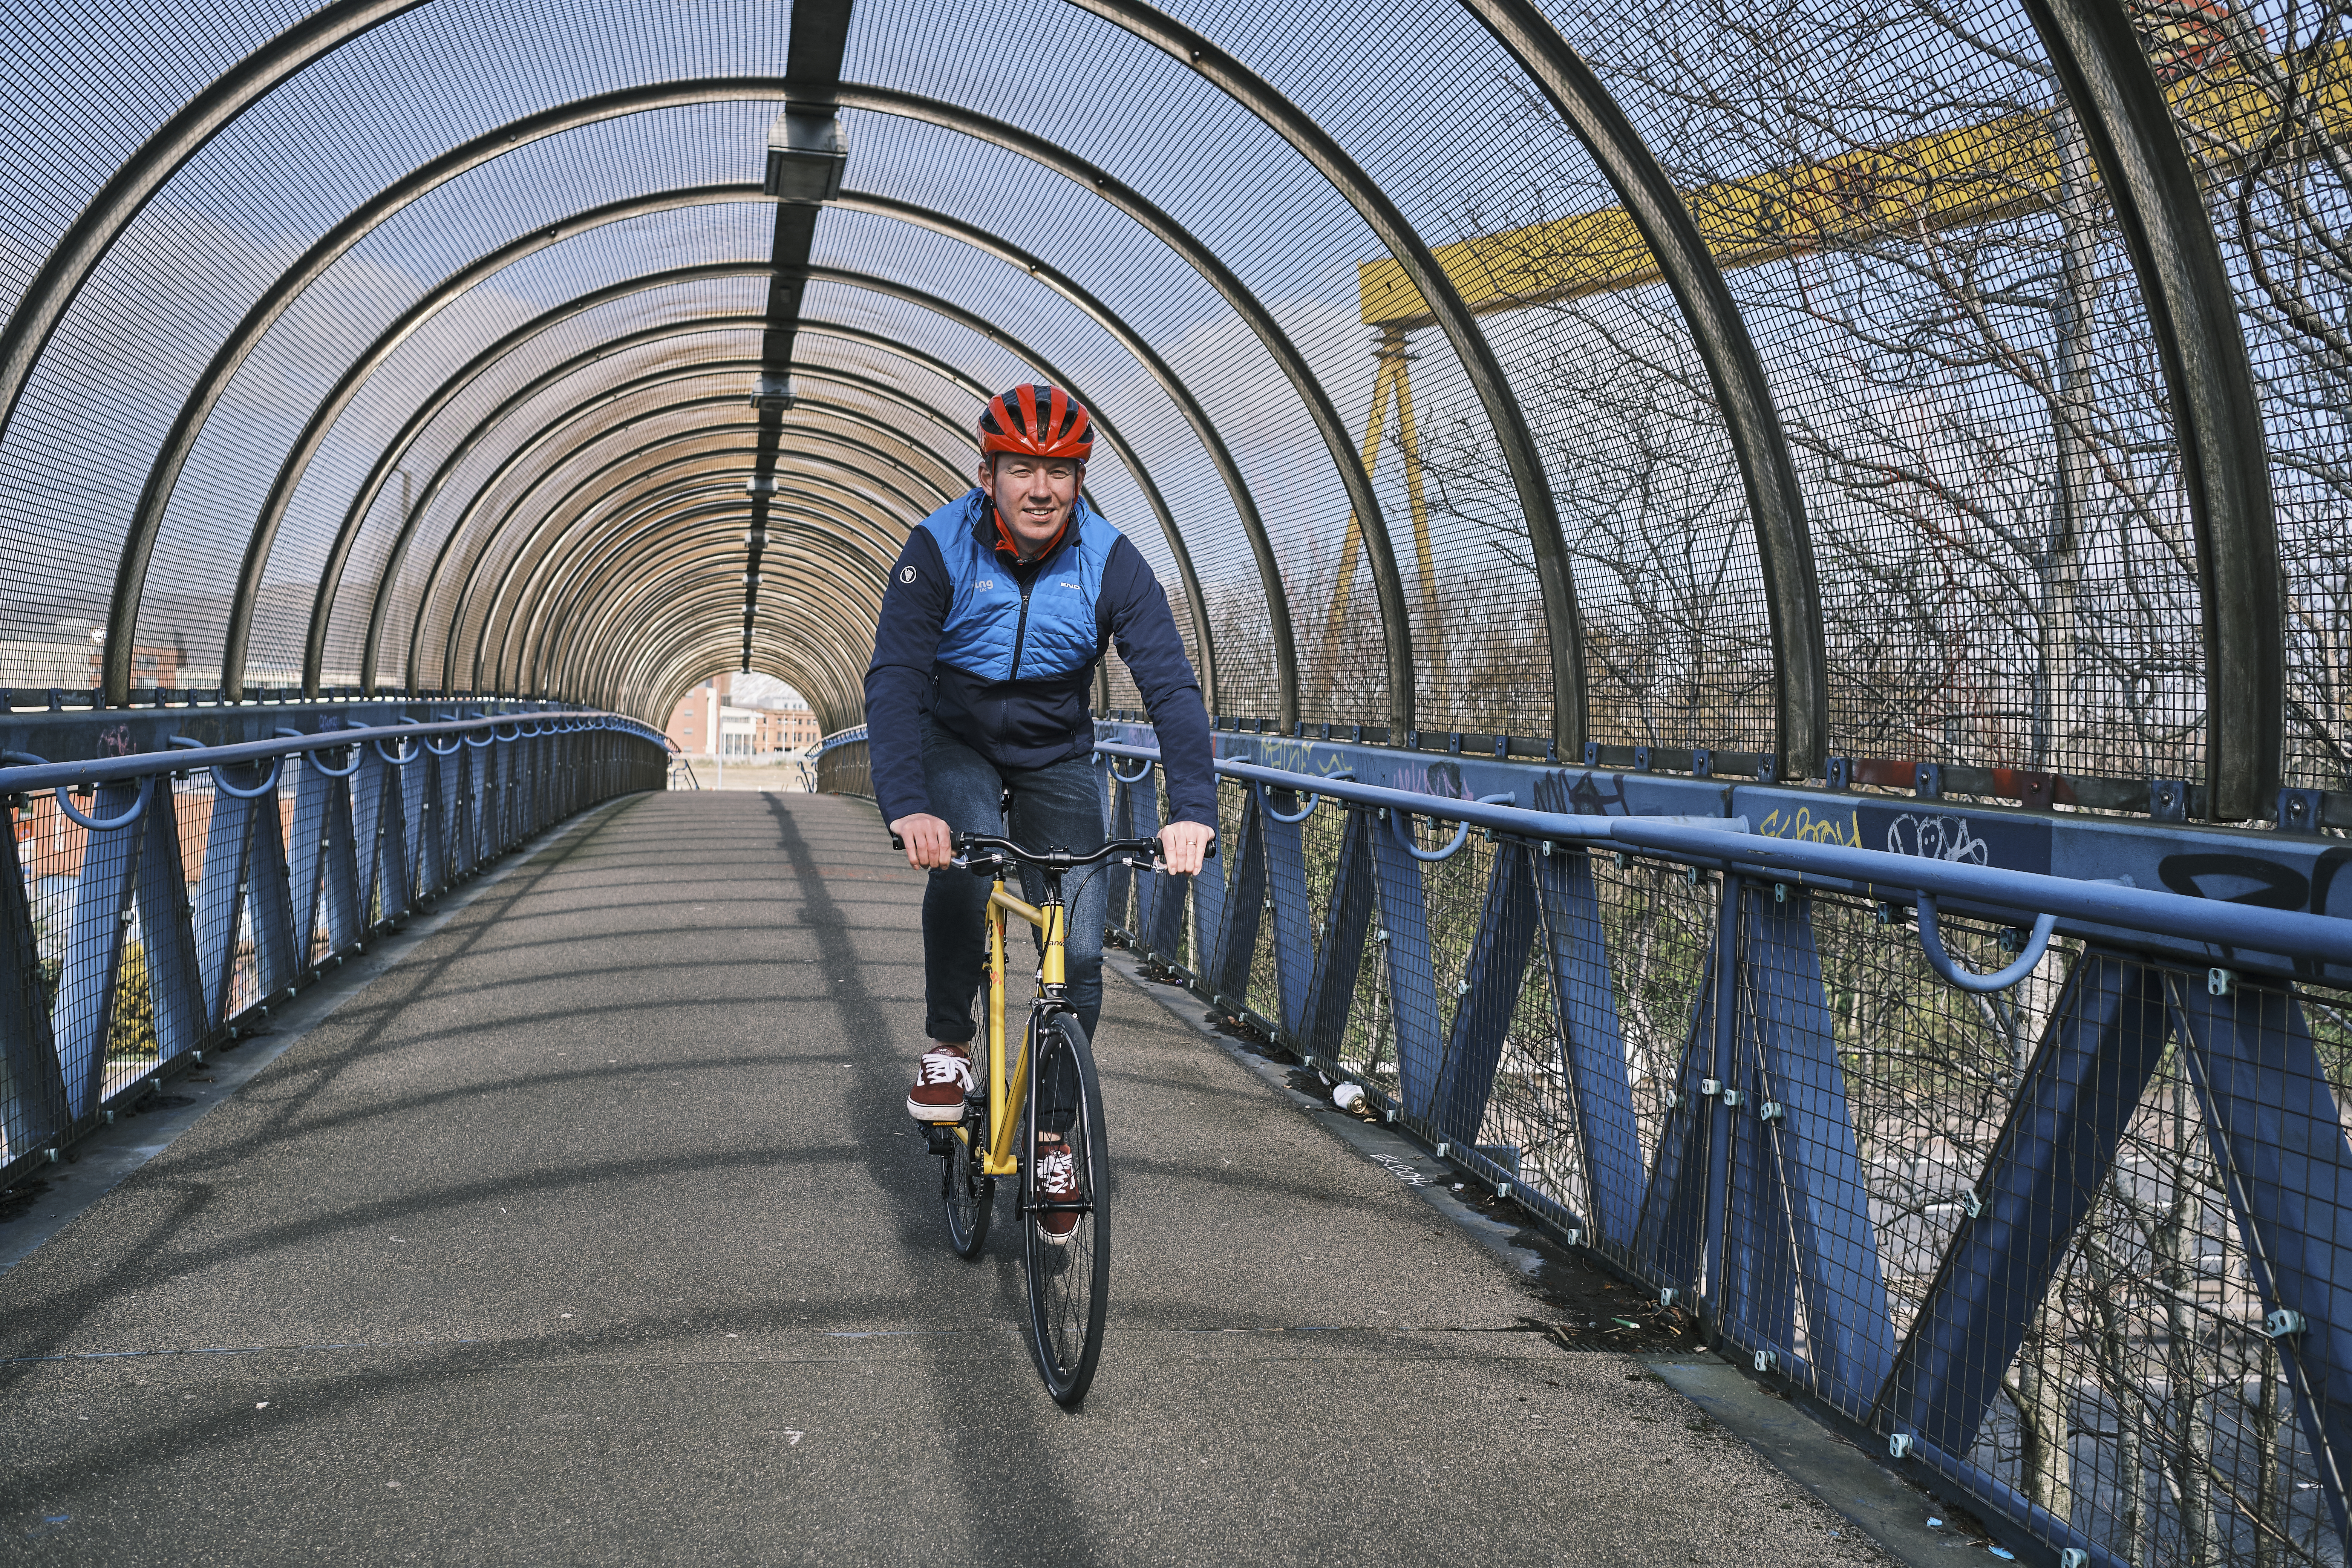 Riding along the Routes and Roots trail